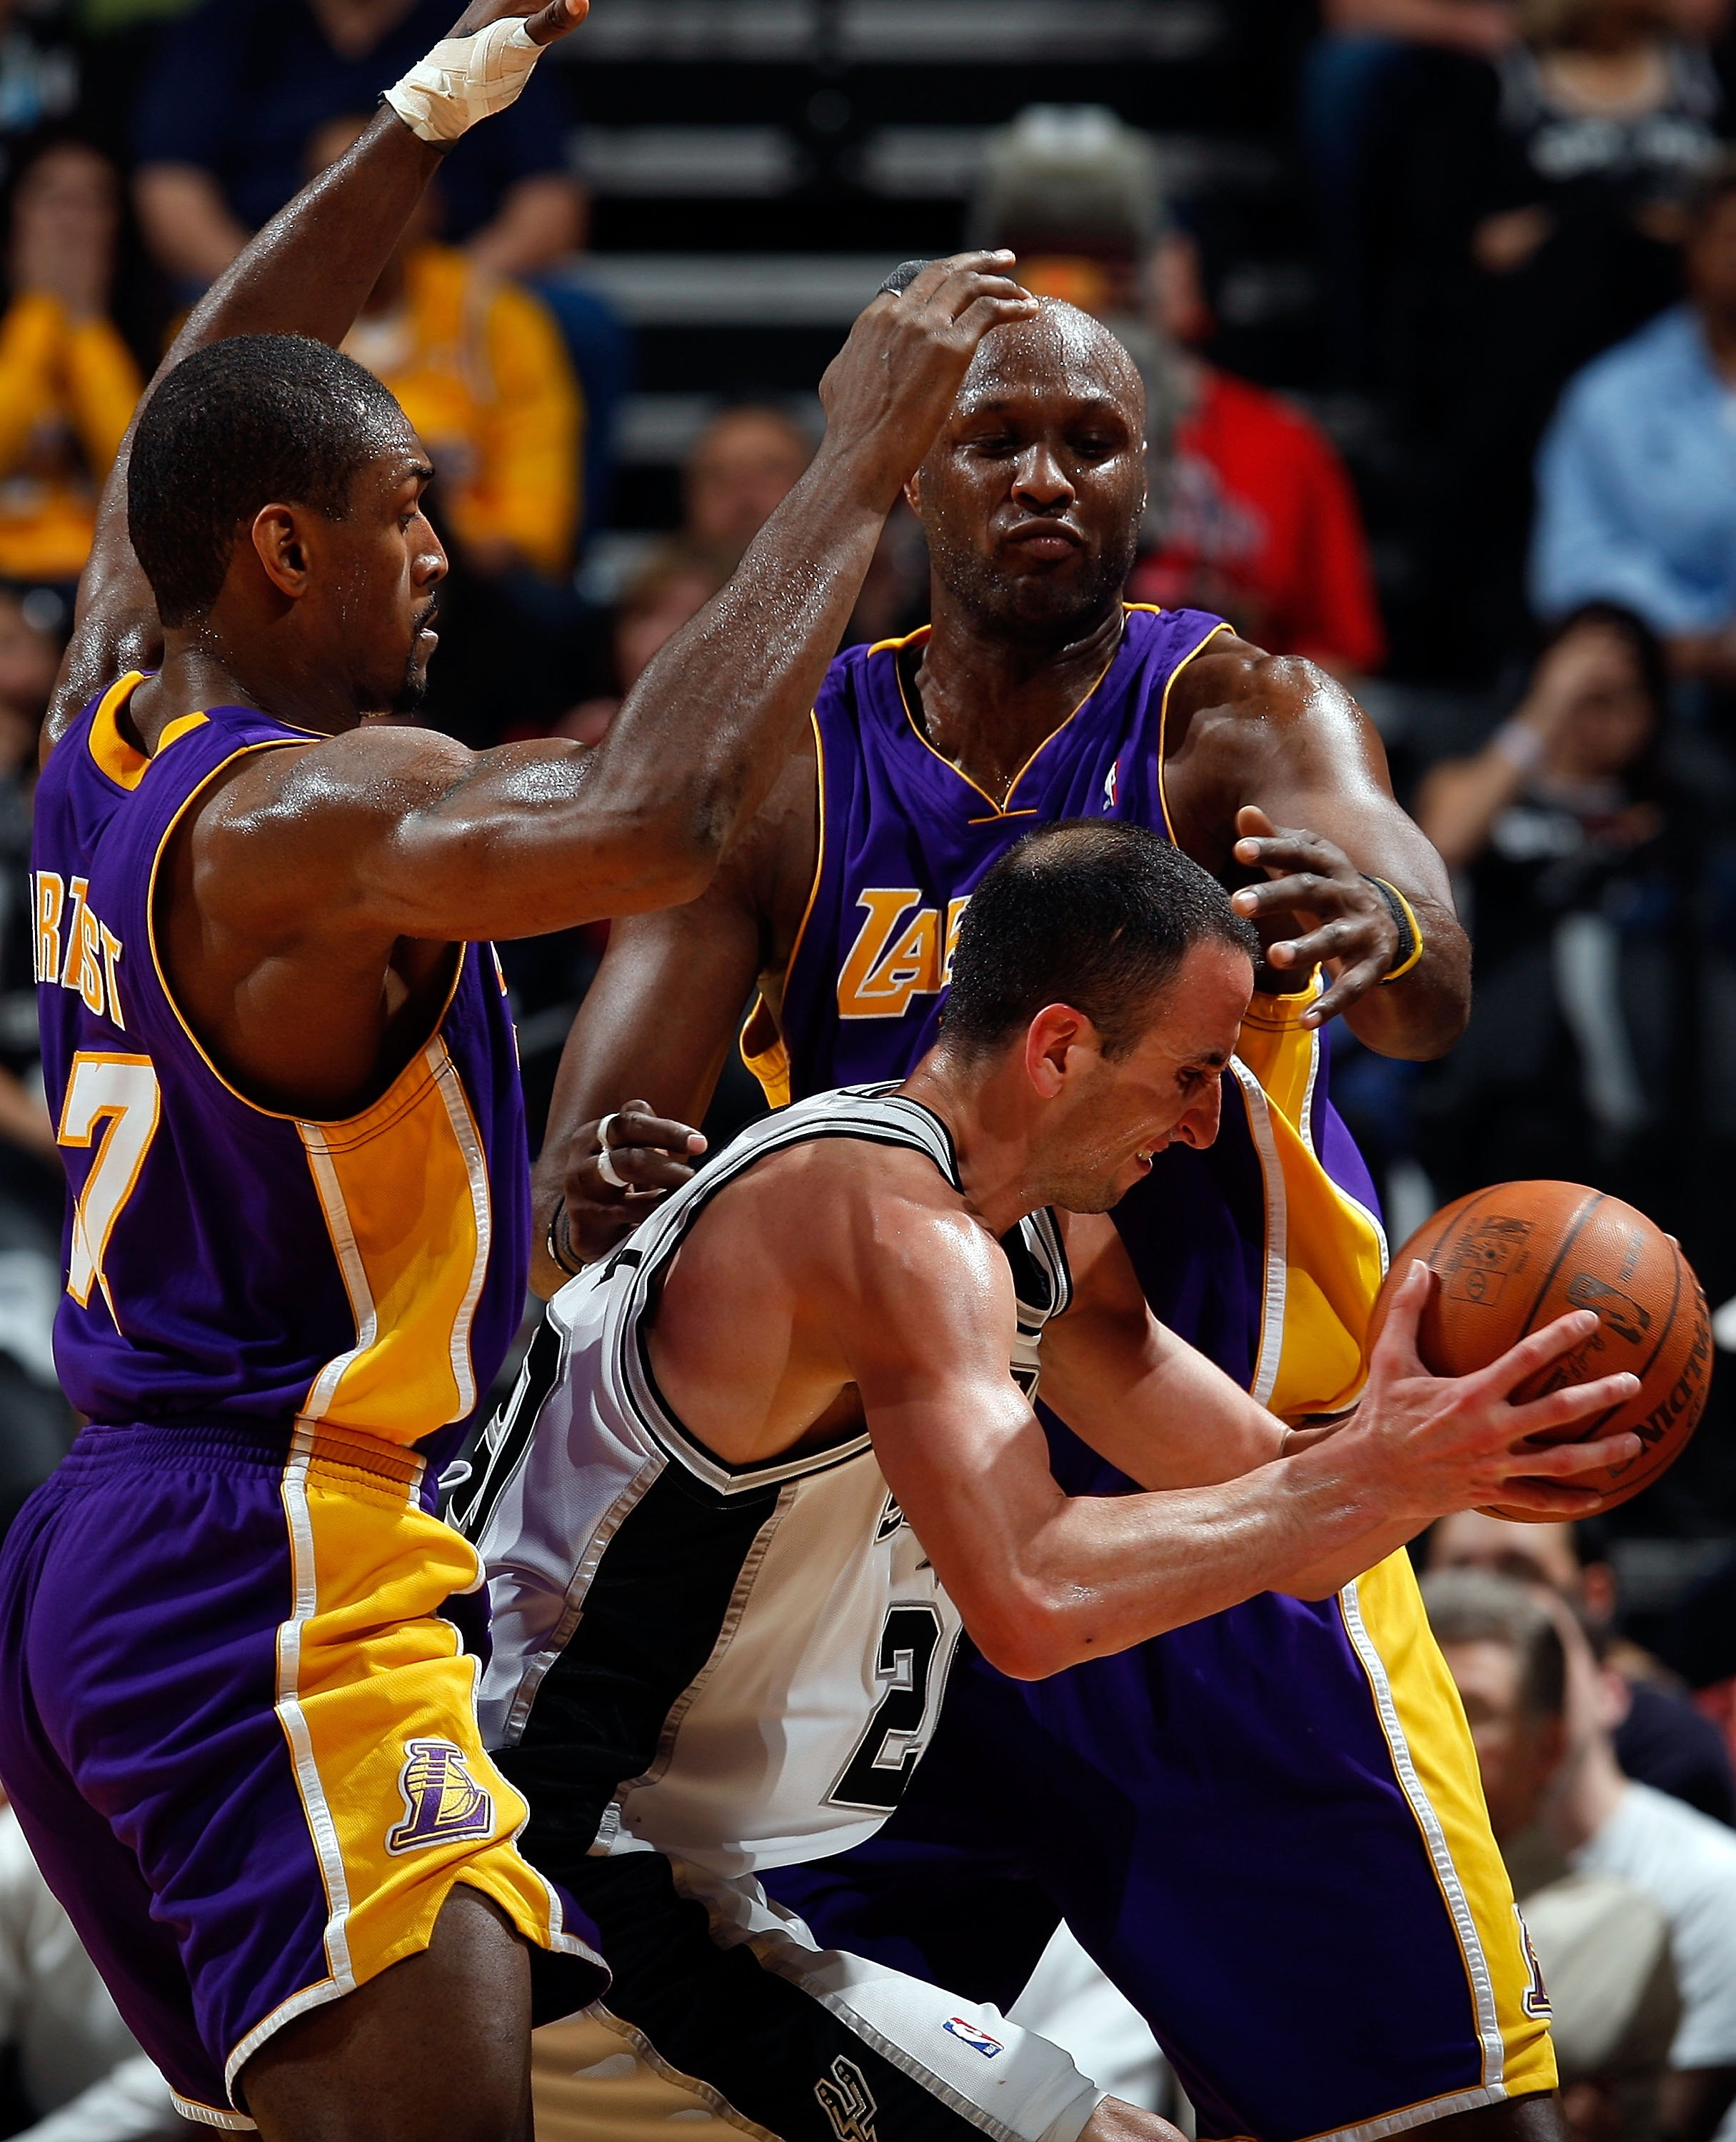 SAN ANTONIO - MARCH 24:  Guard Manu Ginobili #21 of the San Antonio Spurs is defended by Ron Artest and Lamar Odom of the Los Angeles Lakers at AT&T Center on March 24, 2010 in San Antonio, Texas.  NOTE TO USER: User expressly acknowledges and agrees that